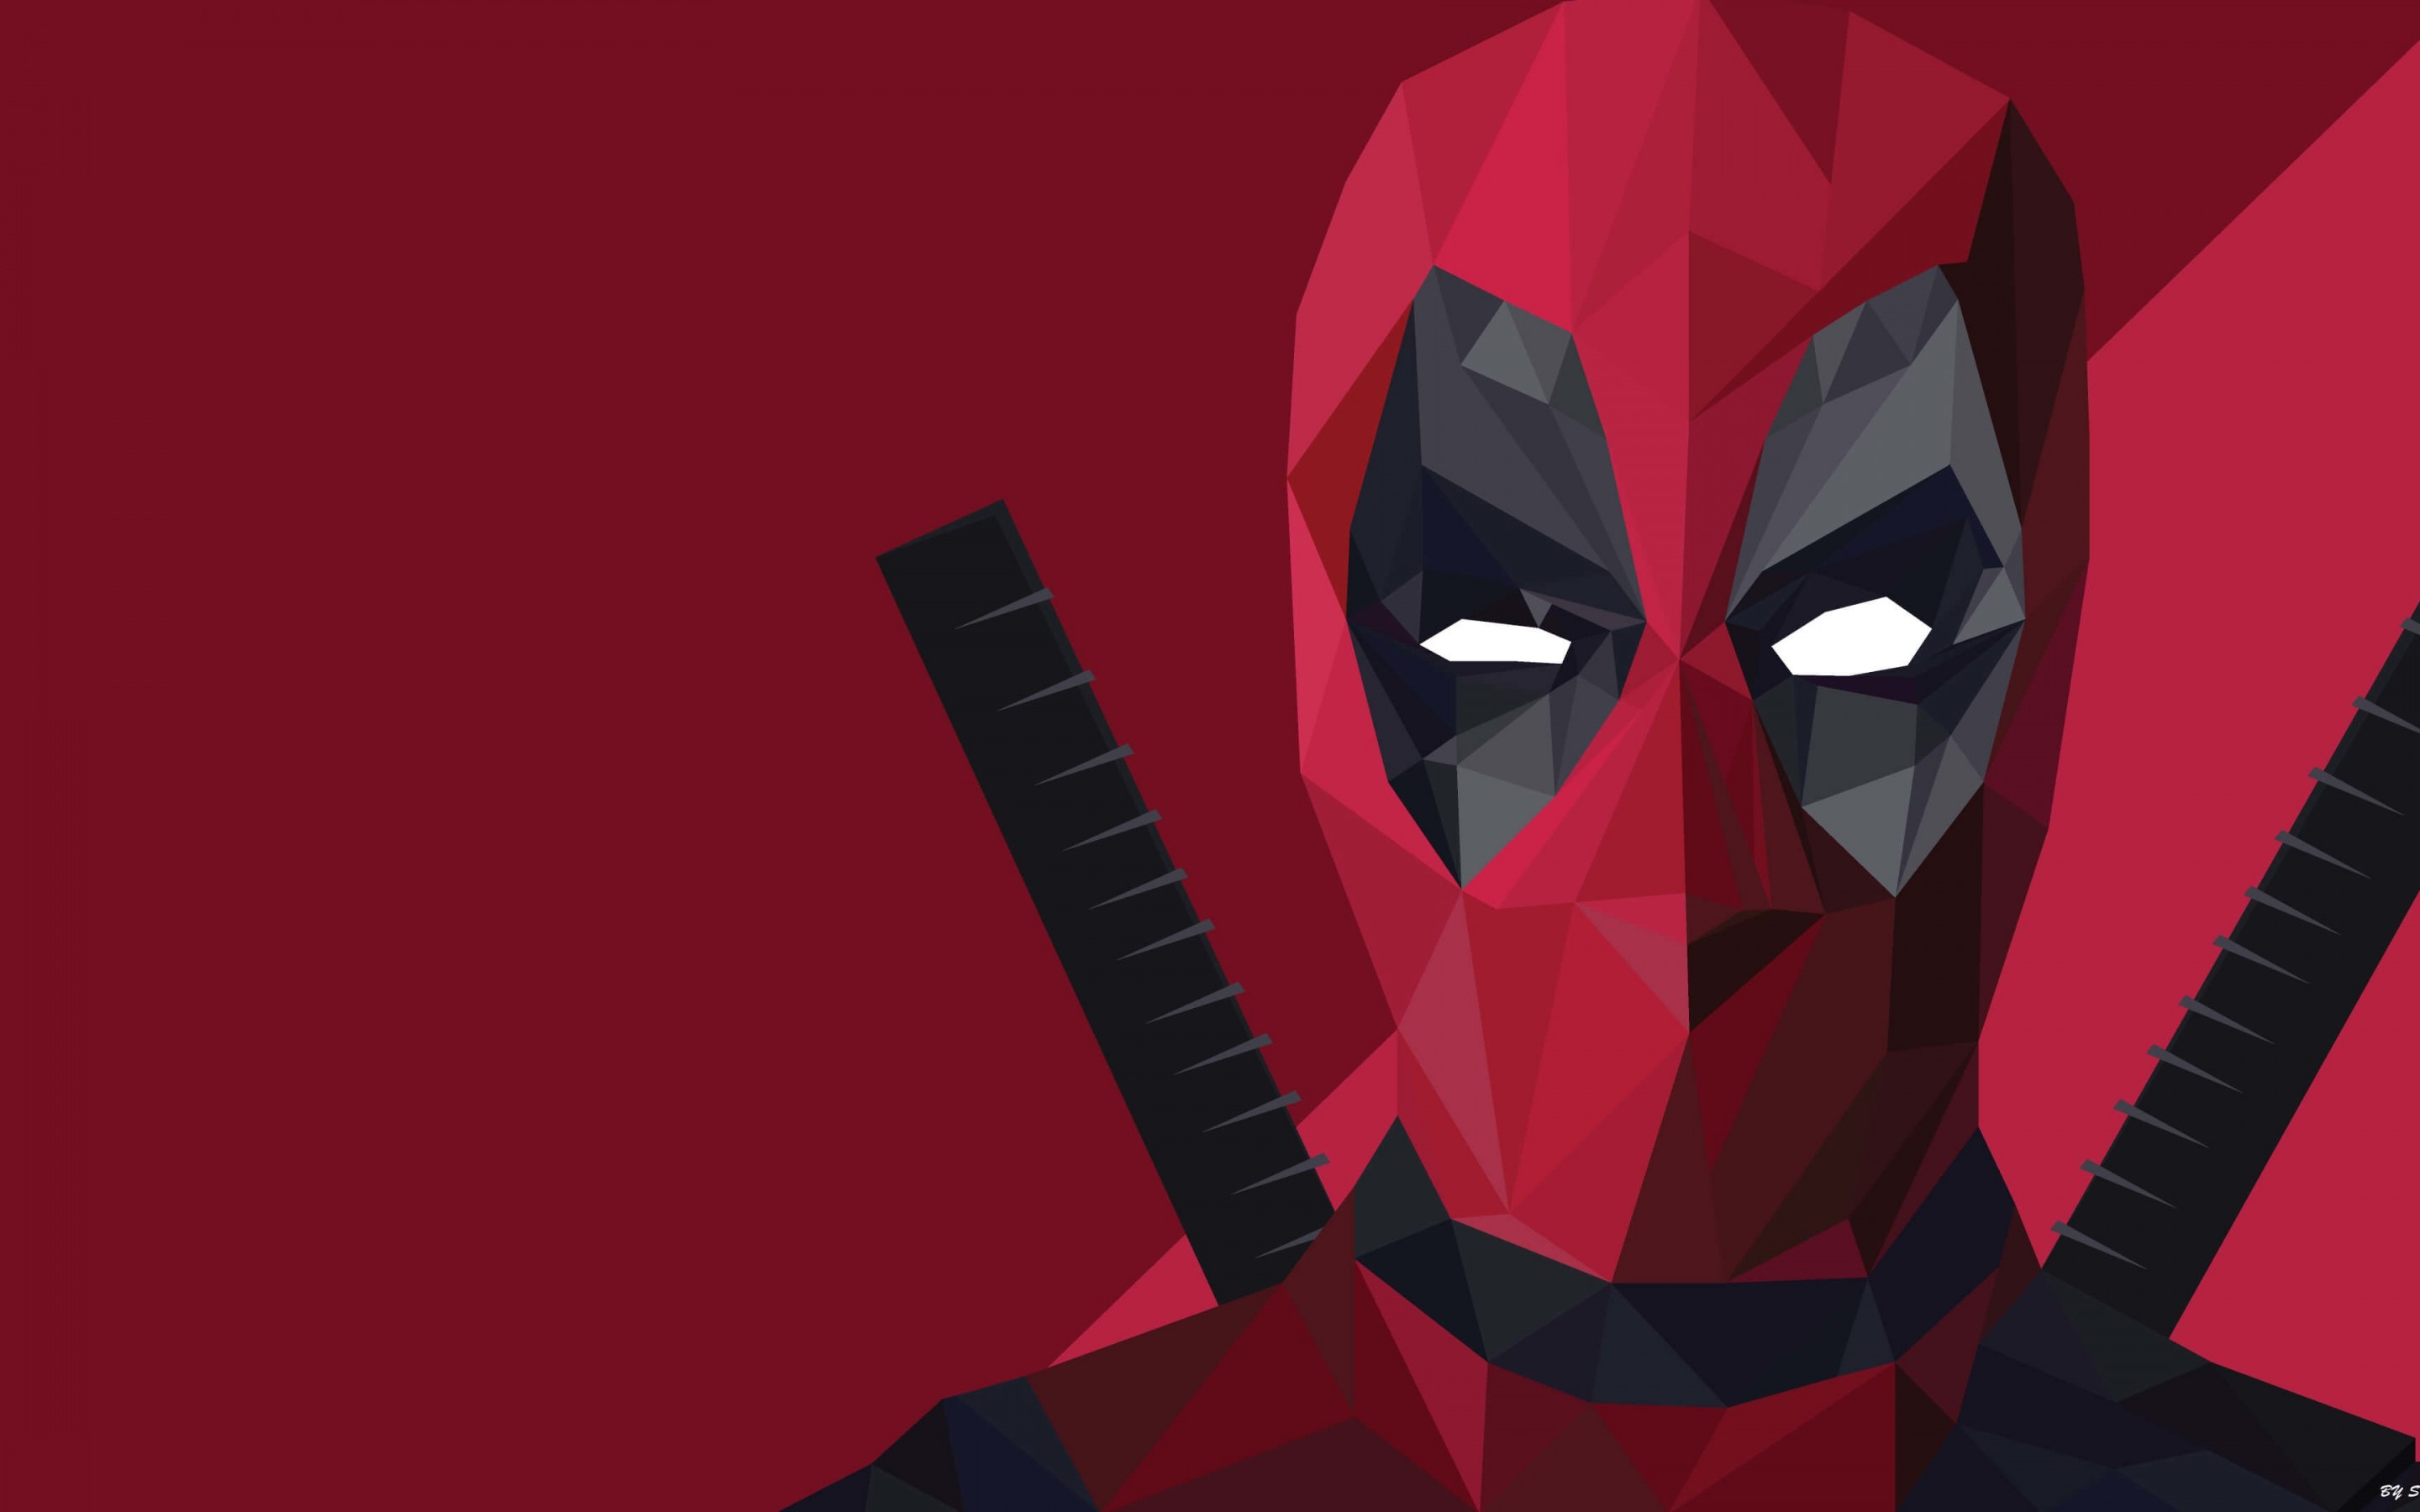 Low Poly Deadpool Wallpaper for Desktop 2880x1800